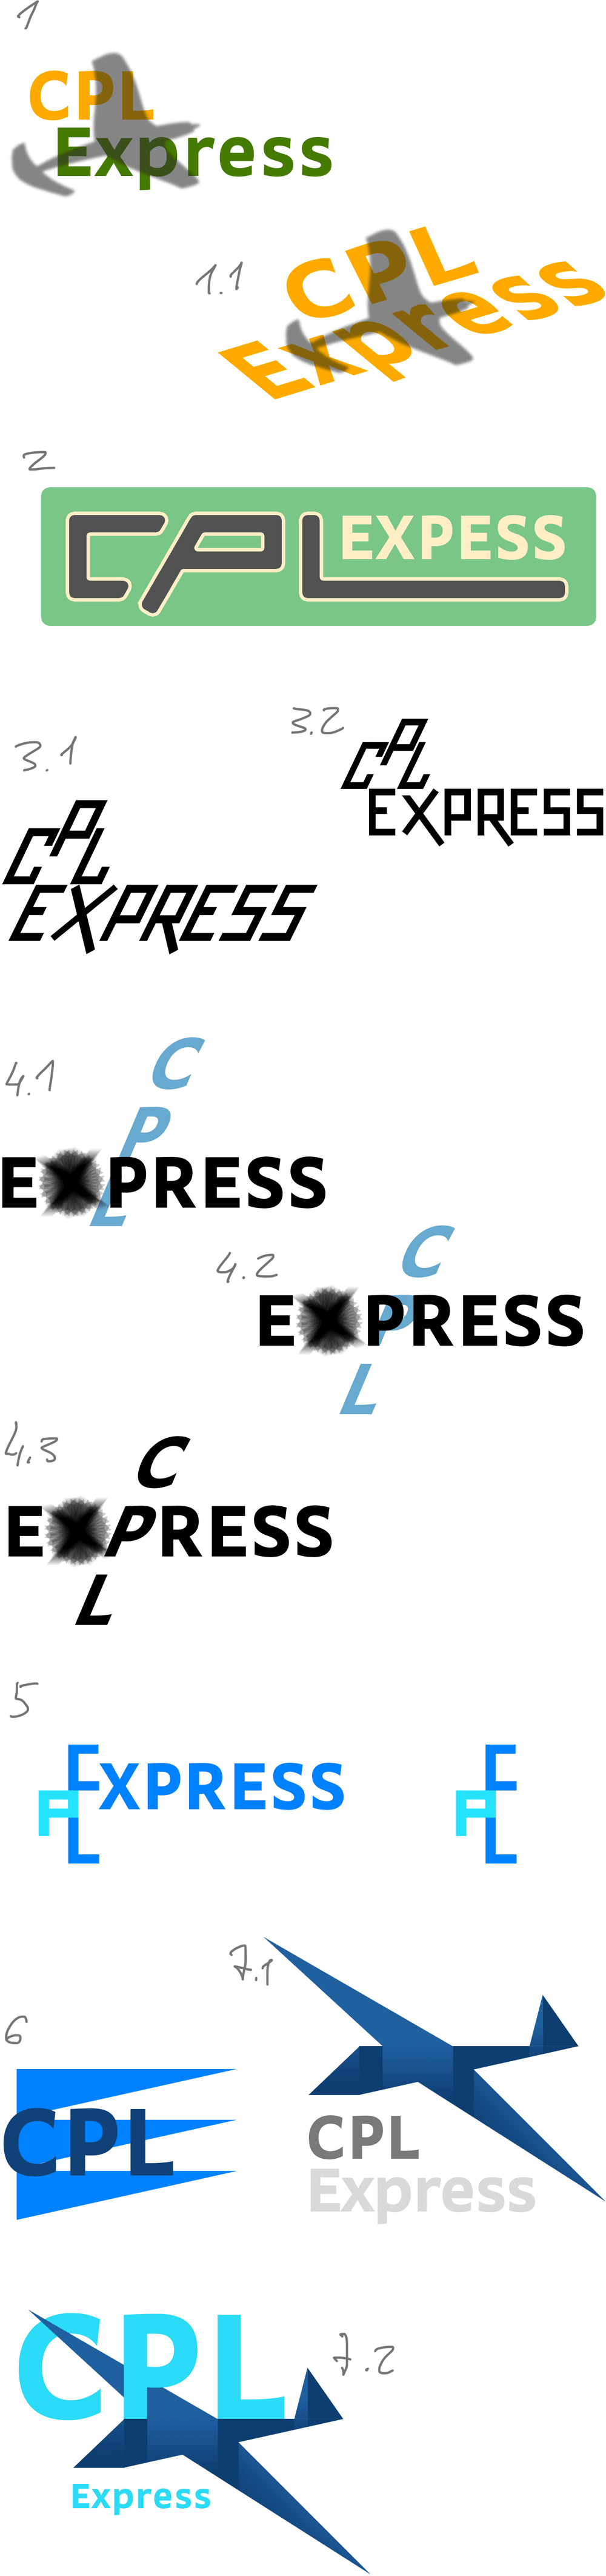 cpl express process 01